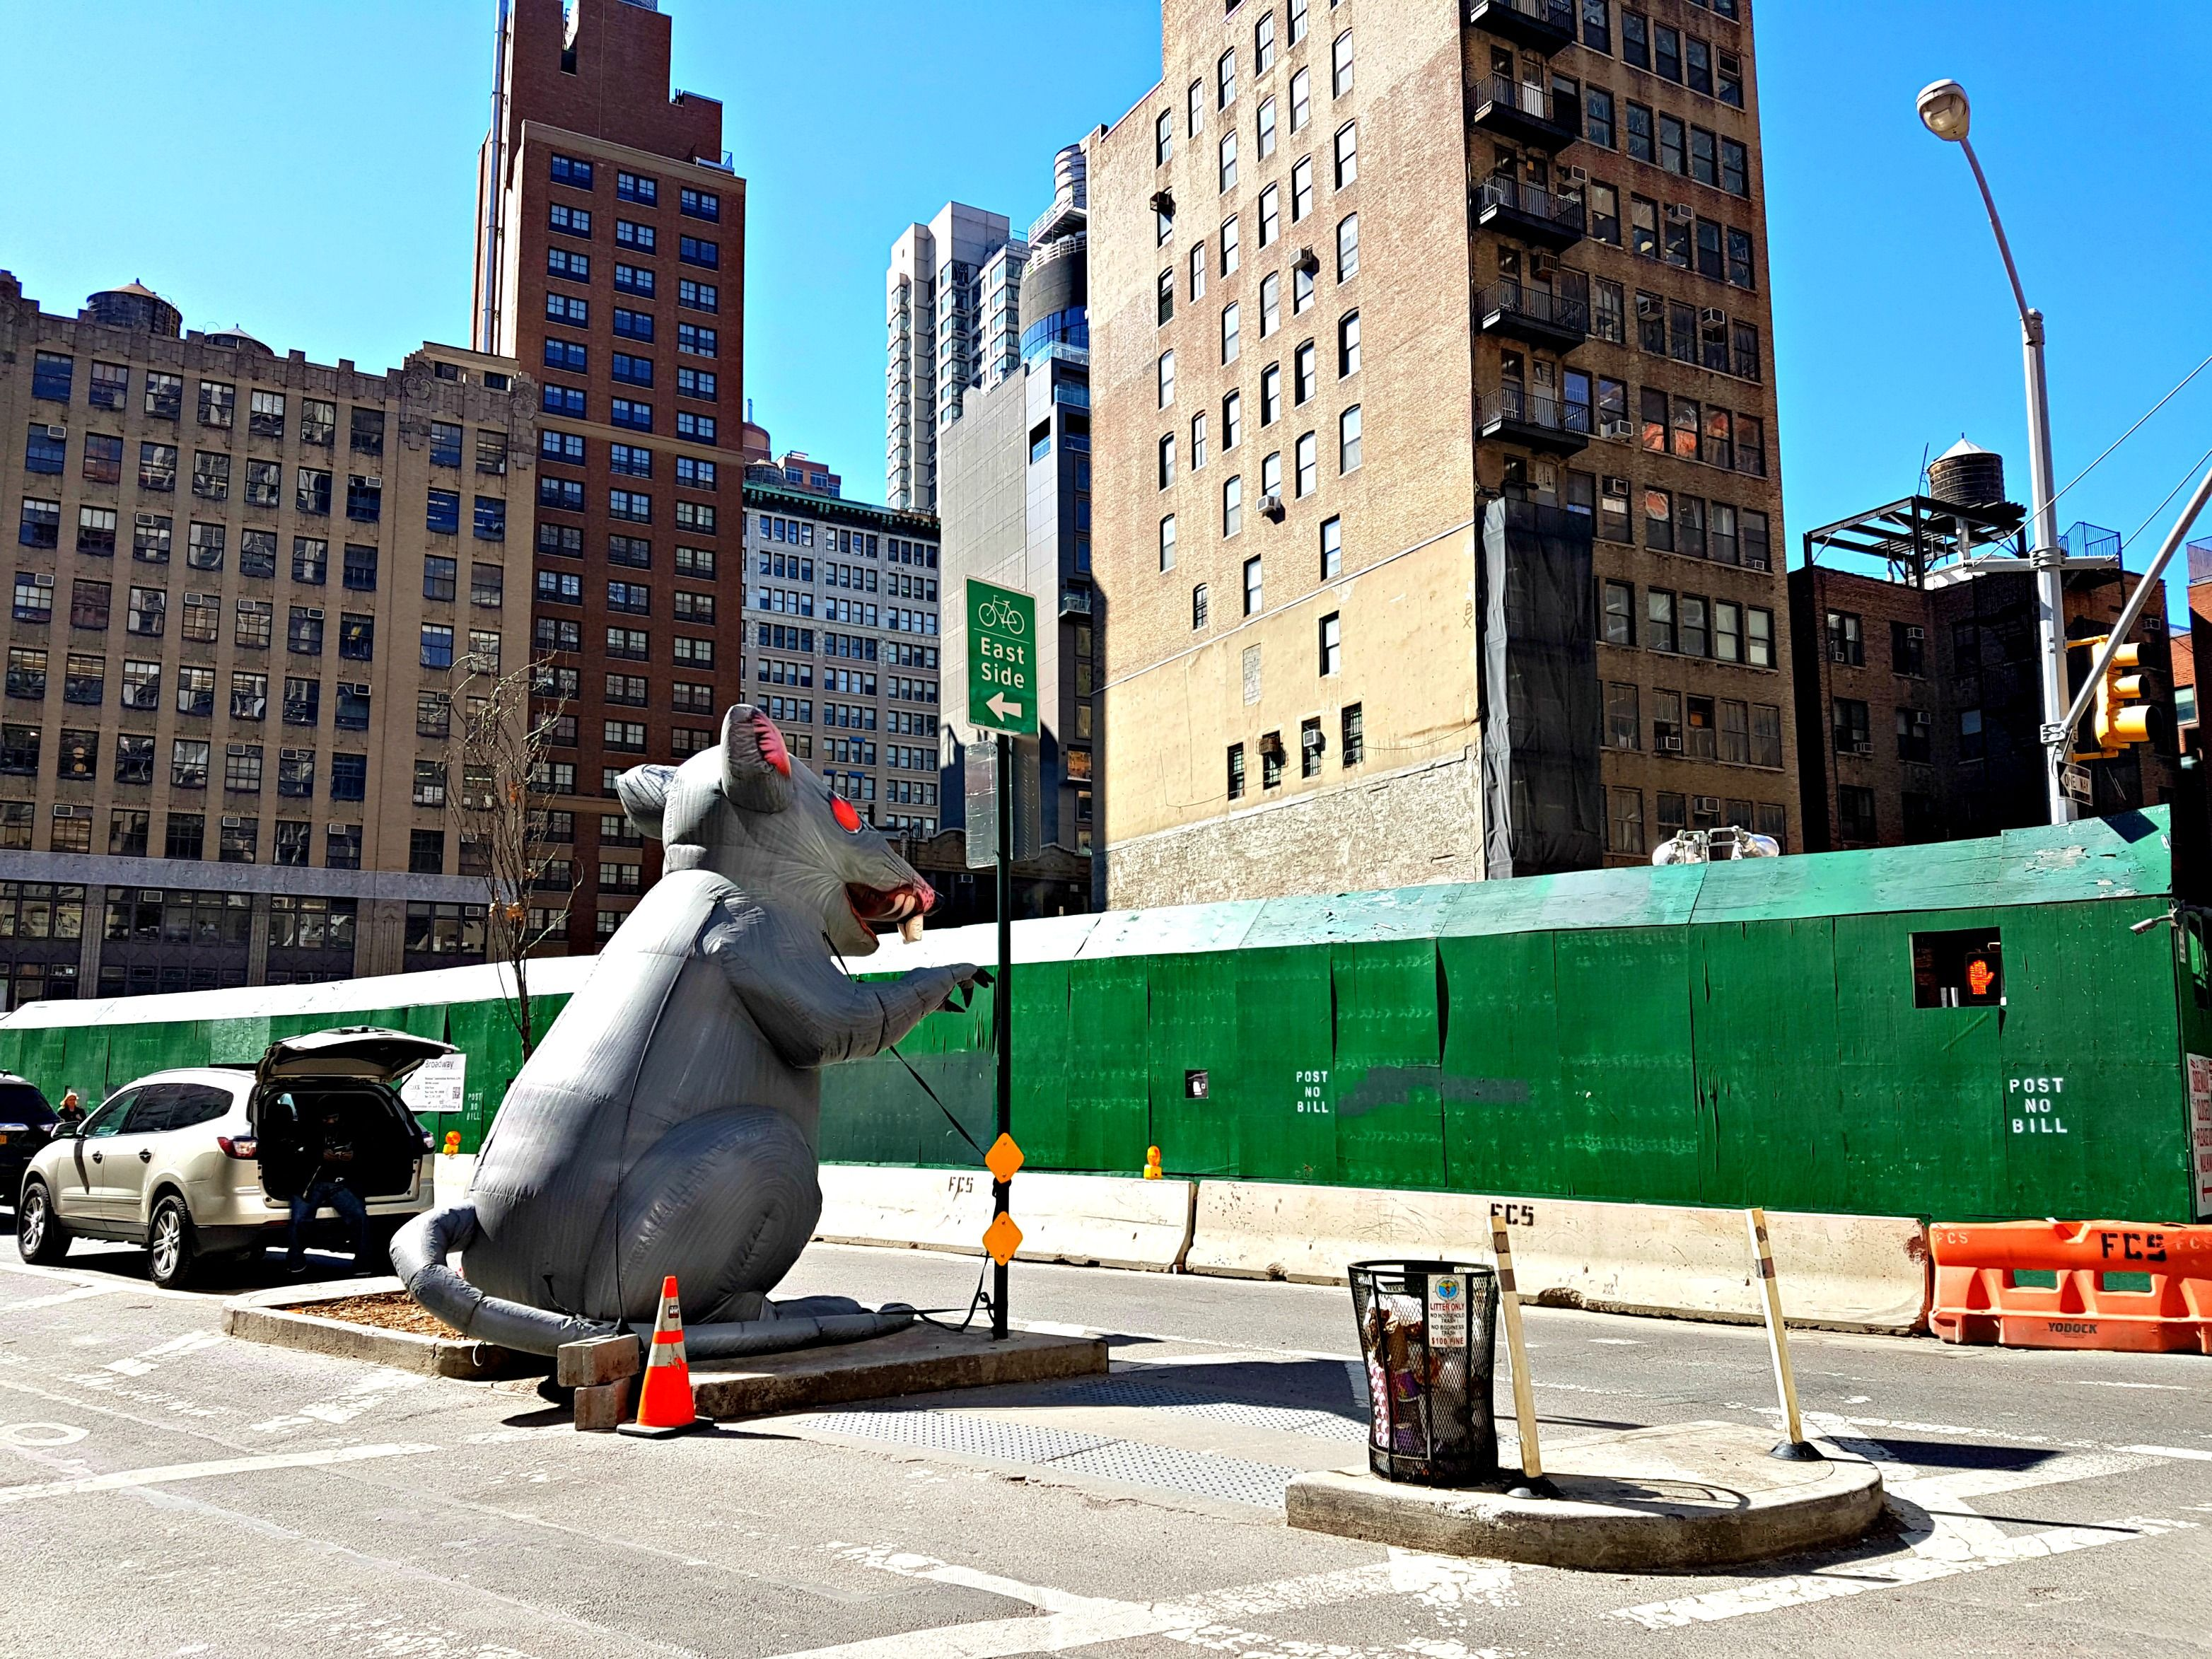 The Things You See In New York | Family travel blog, New